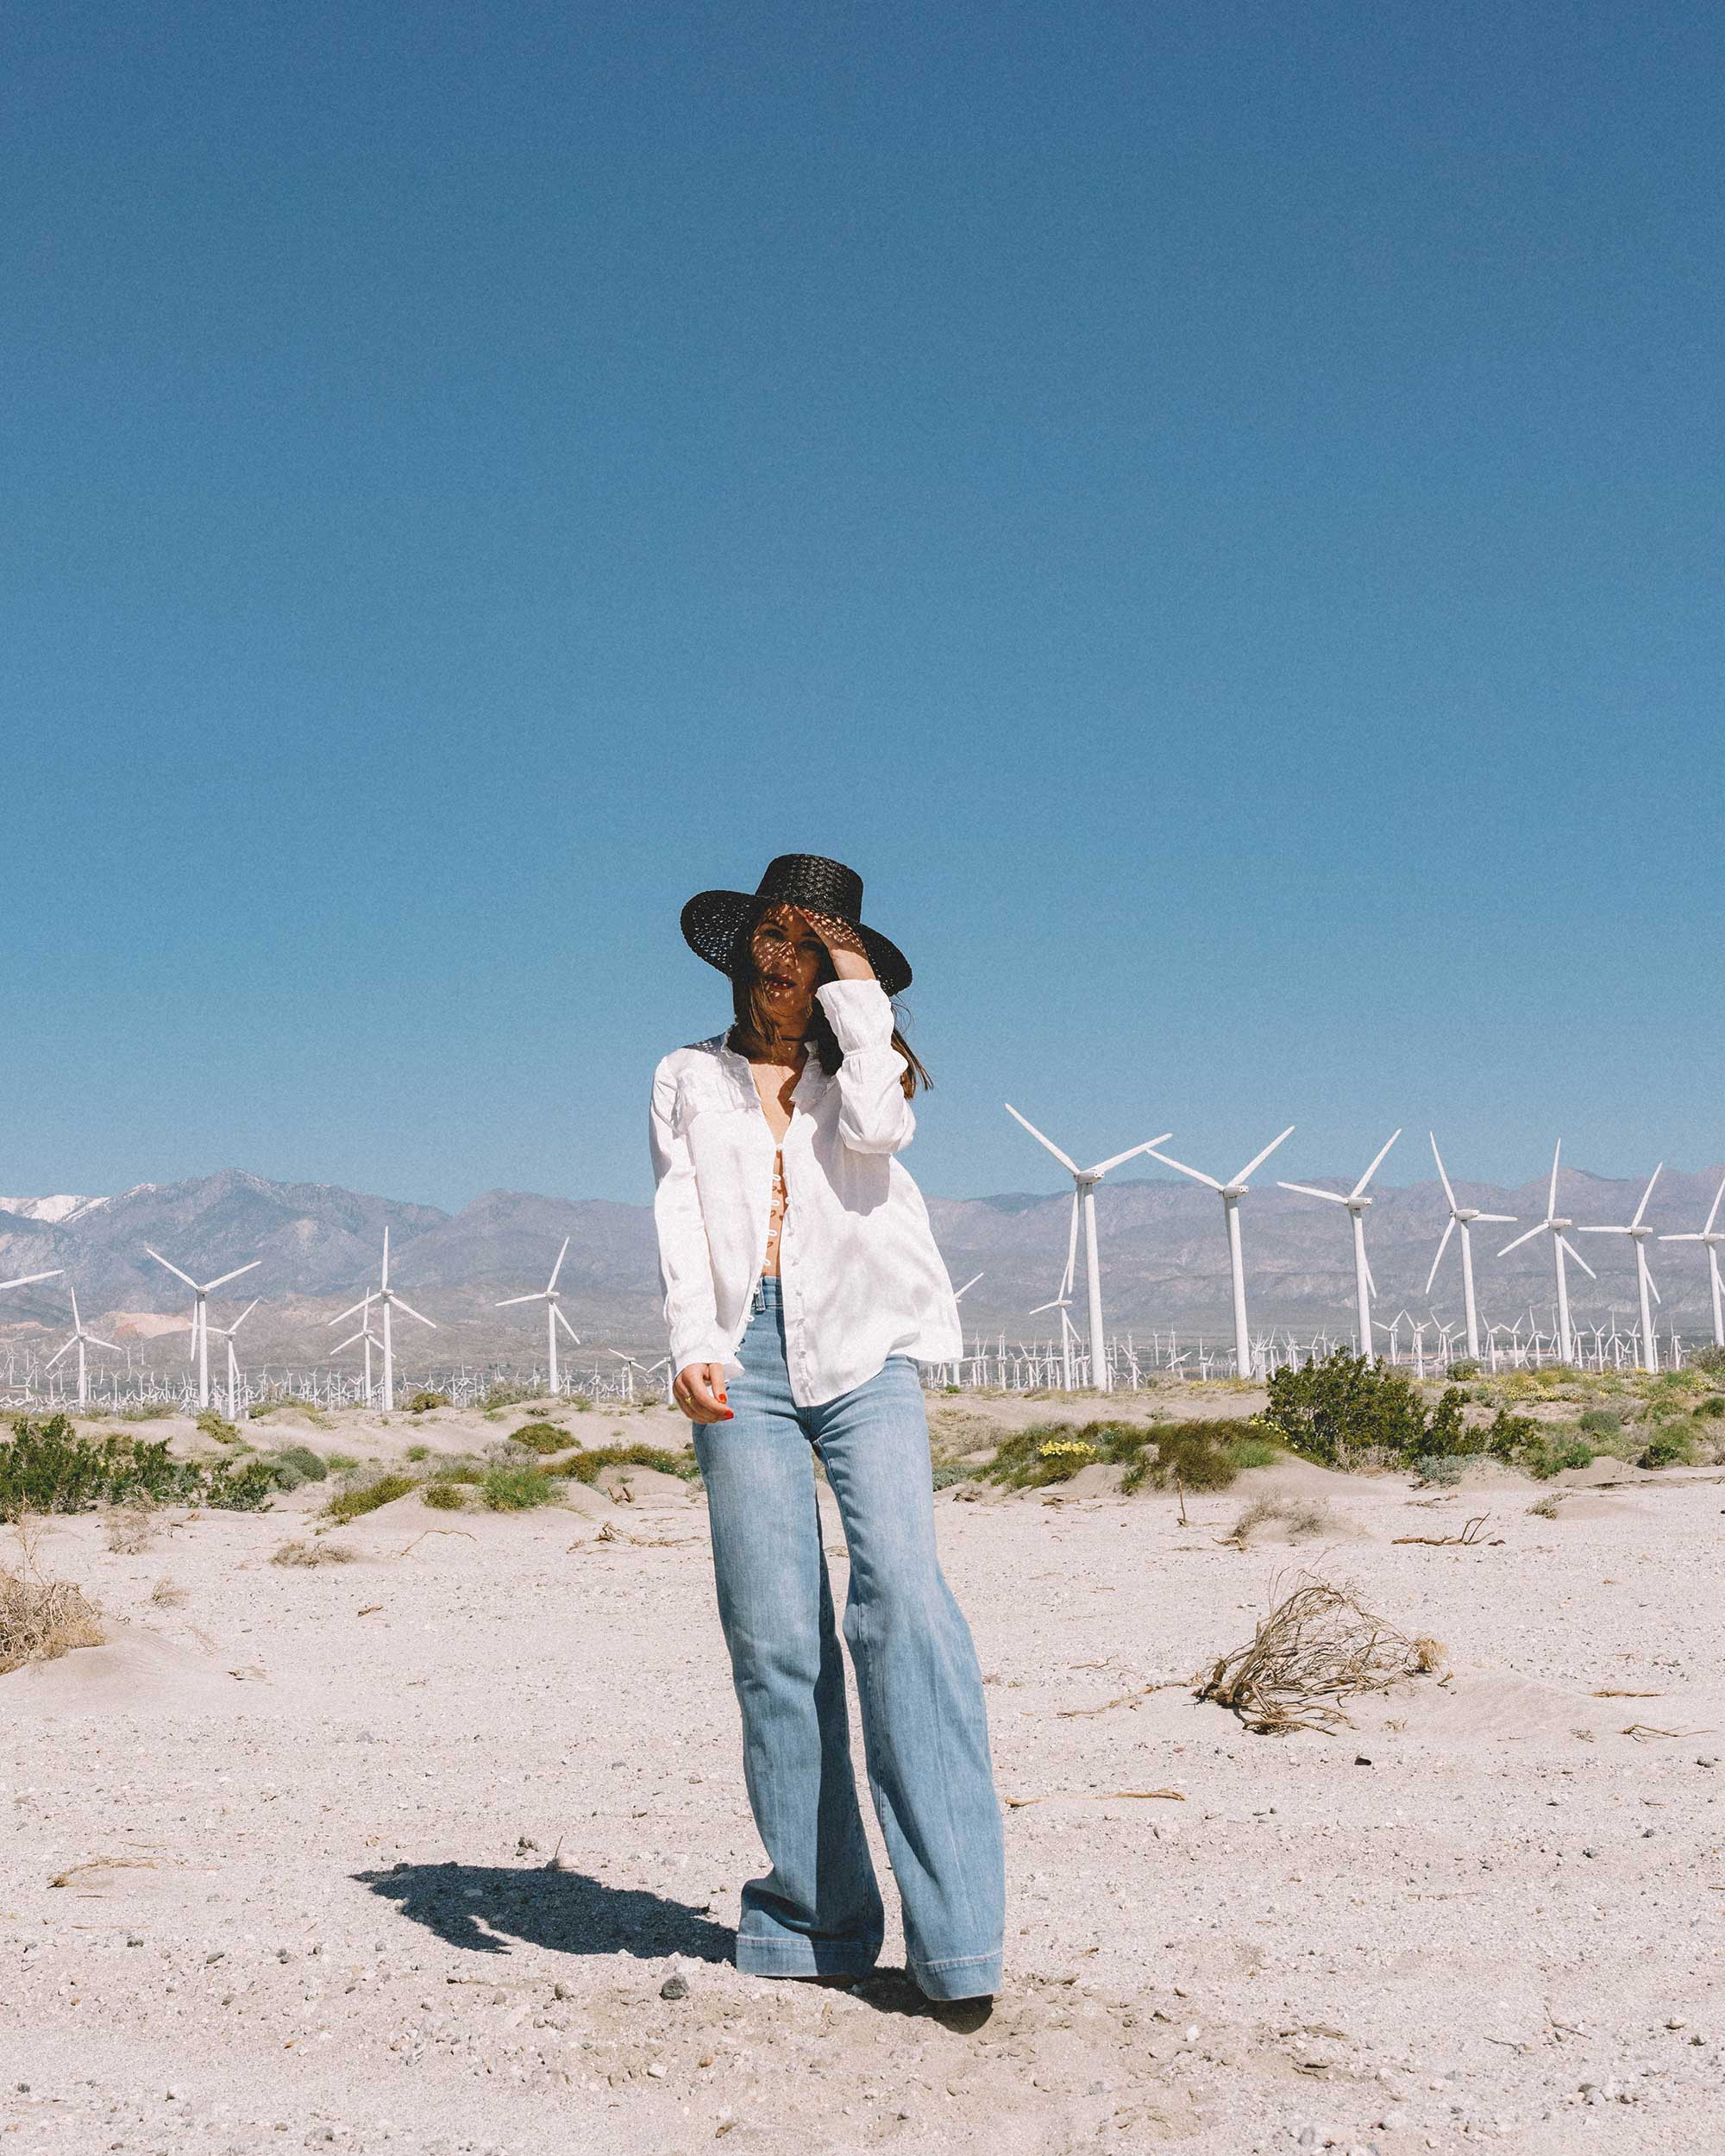 Sarah Butler of Sarah Styles Seattle wears Paige Anguilla Long-Sleeve Blouse with Layered Ruffle Trim, Paige Sutton High Waist Wide Leg Jeans, and Lack of Color Women's Sunnydip Noir Hat in Palm Springs for Coachella Festival Outfit | @sarahchristine4.jpg